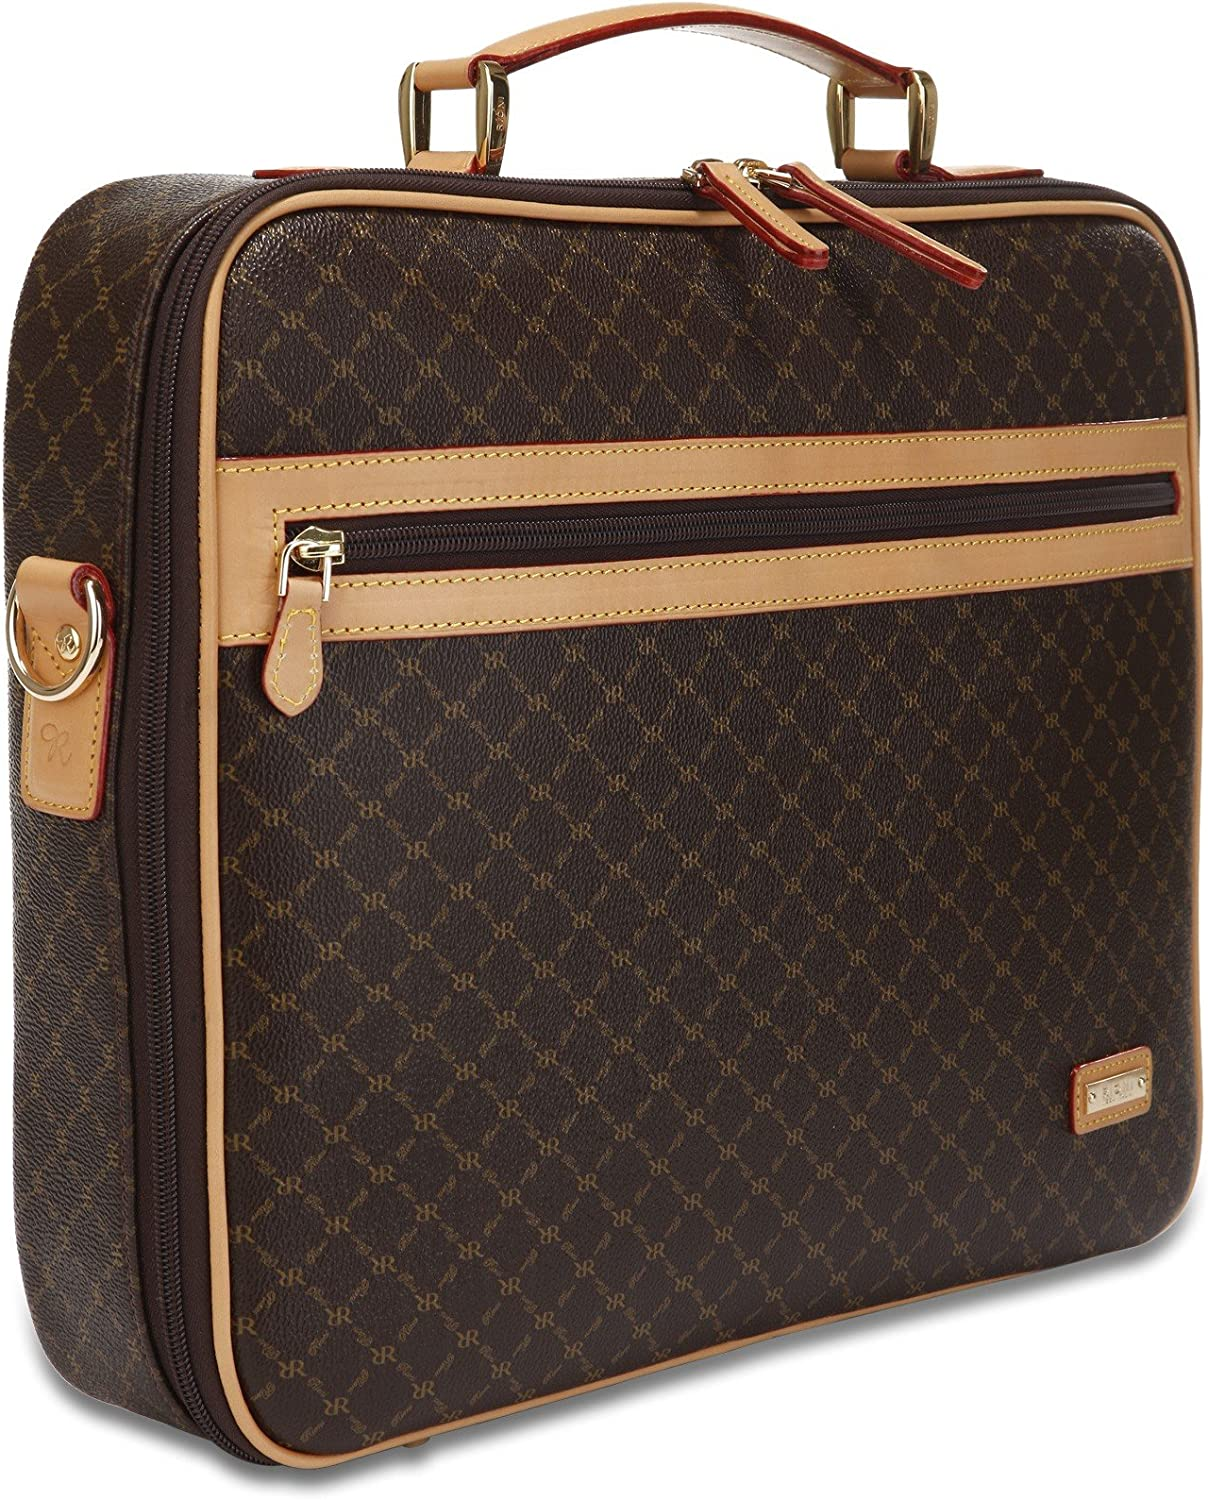 Rioni Signature Jetsetter s Laptop Briefcase – Signature Brown